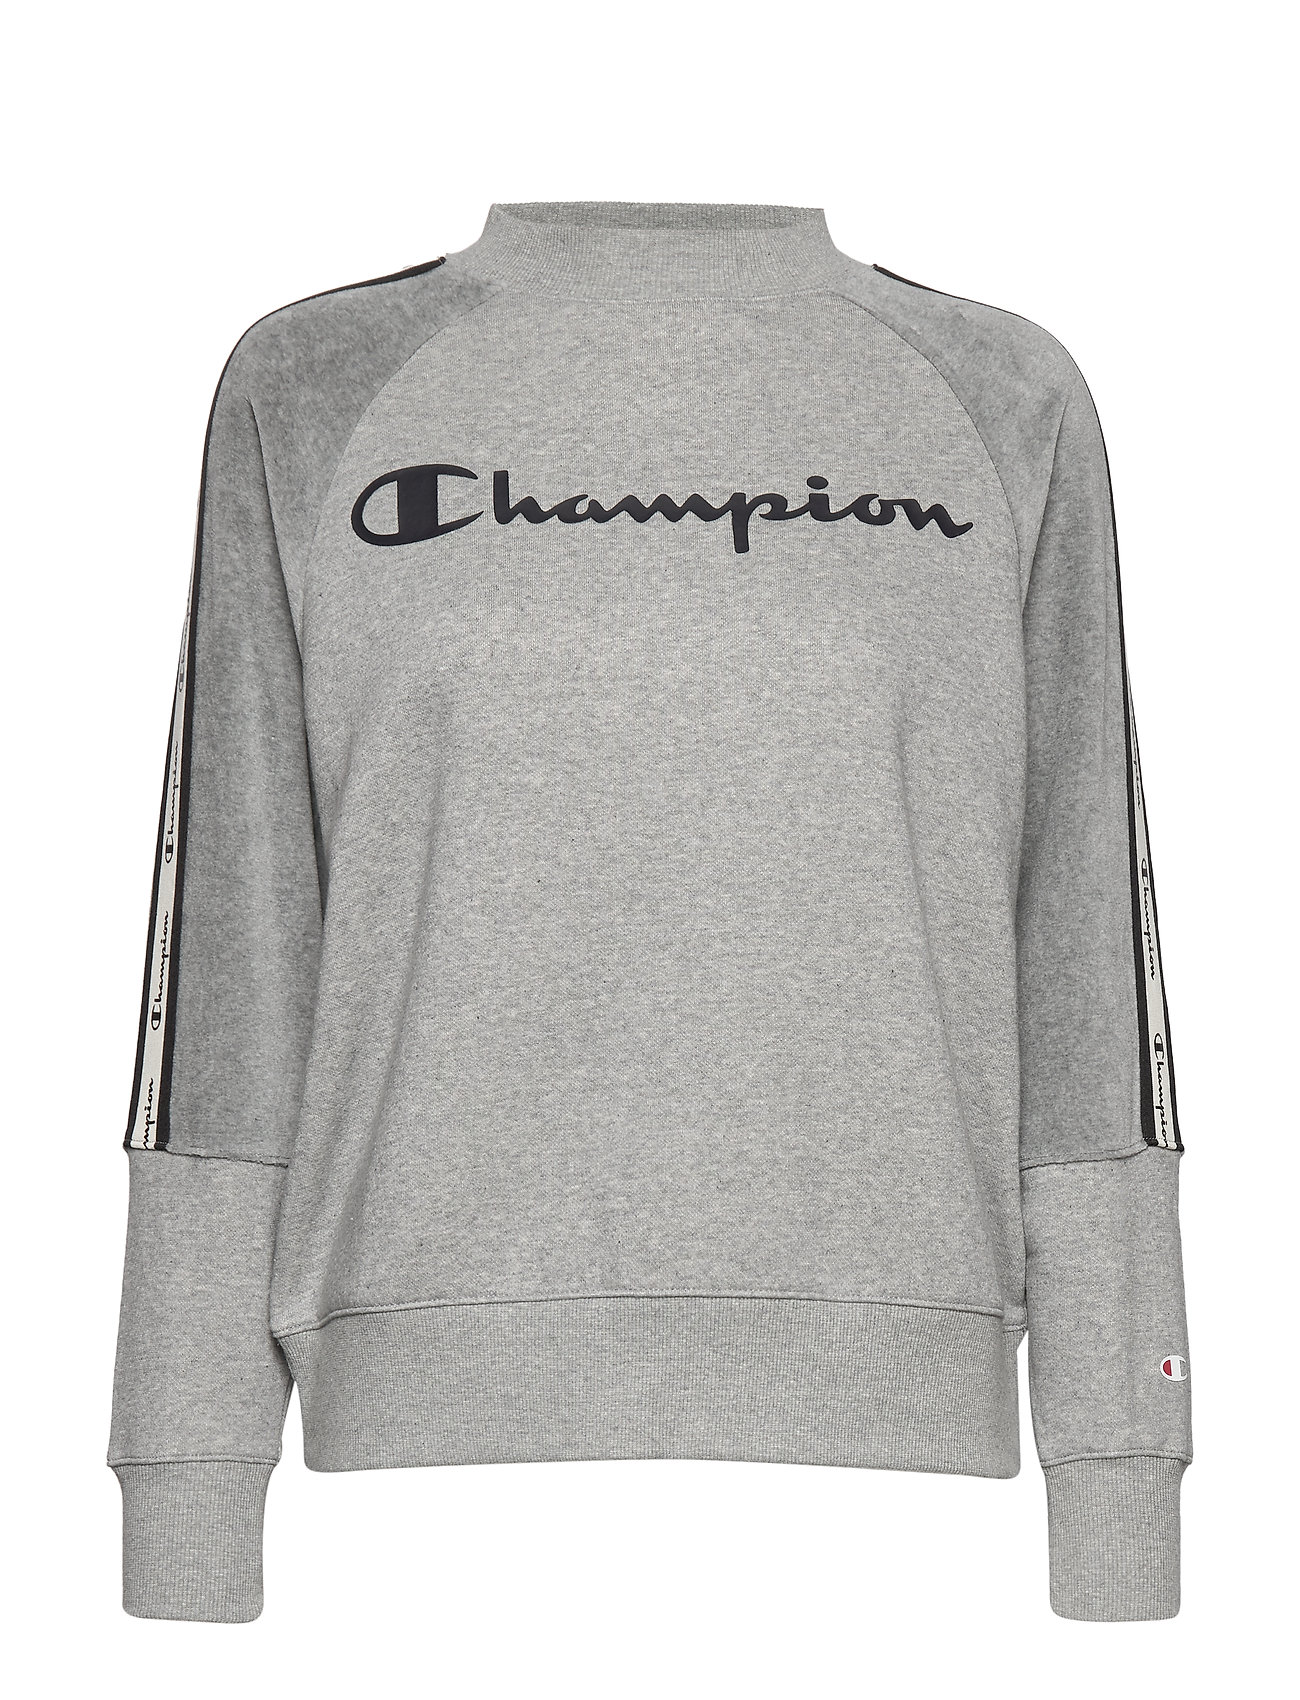 Champion Crewneck Sweatshirt - GRAY MELANGE LIGHT